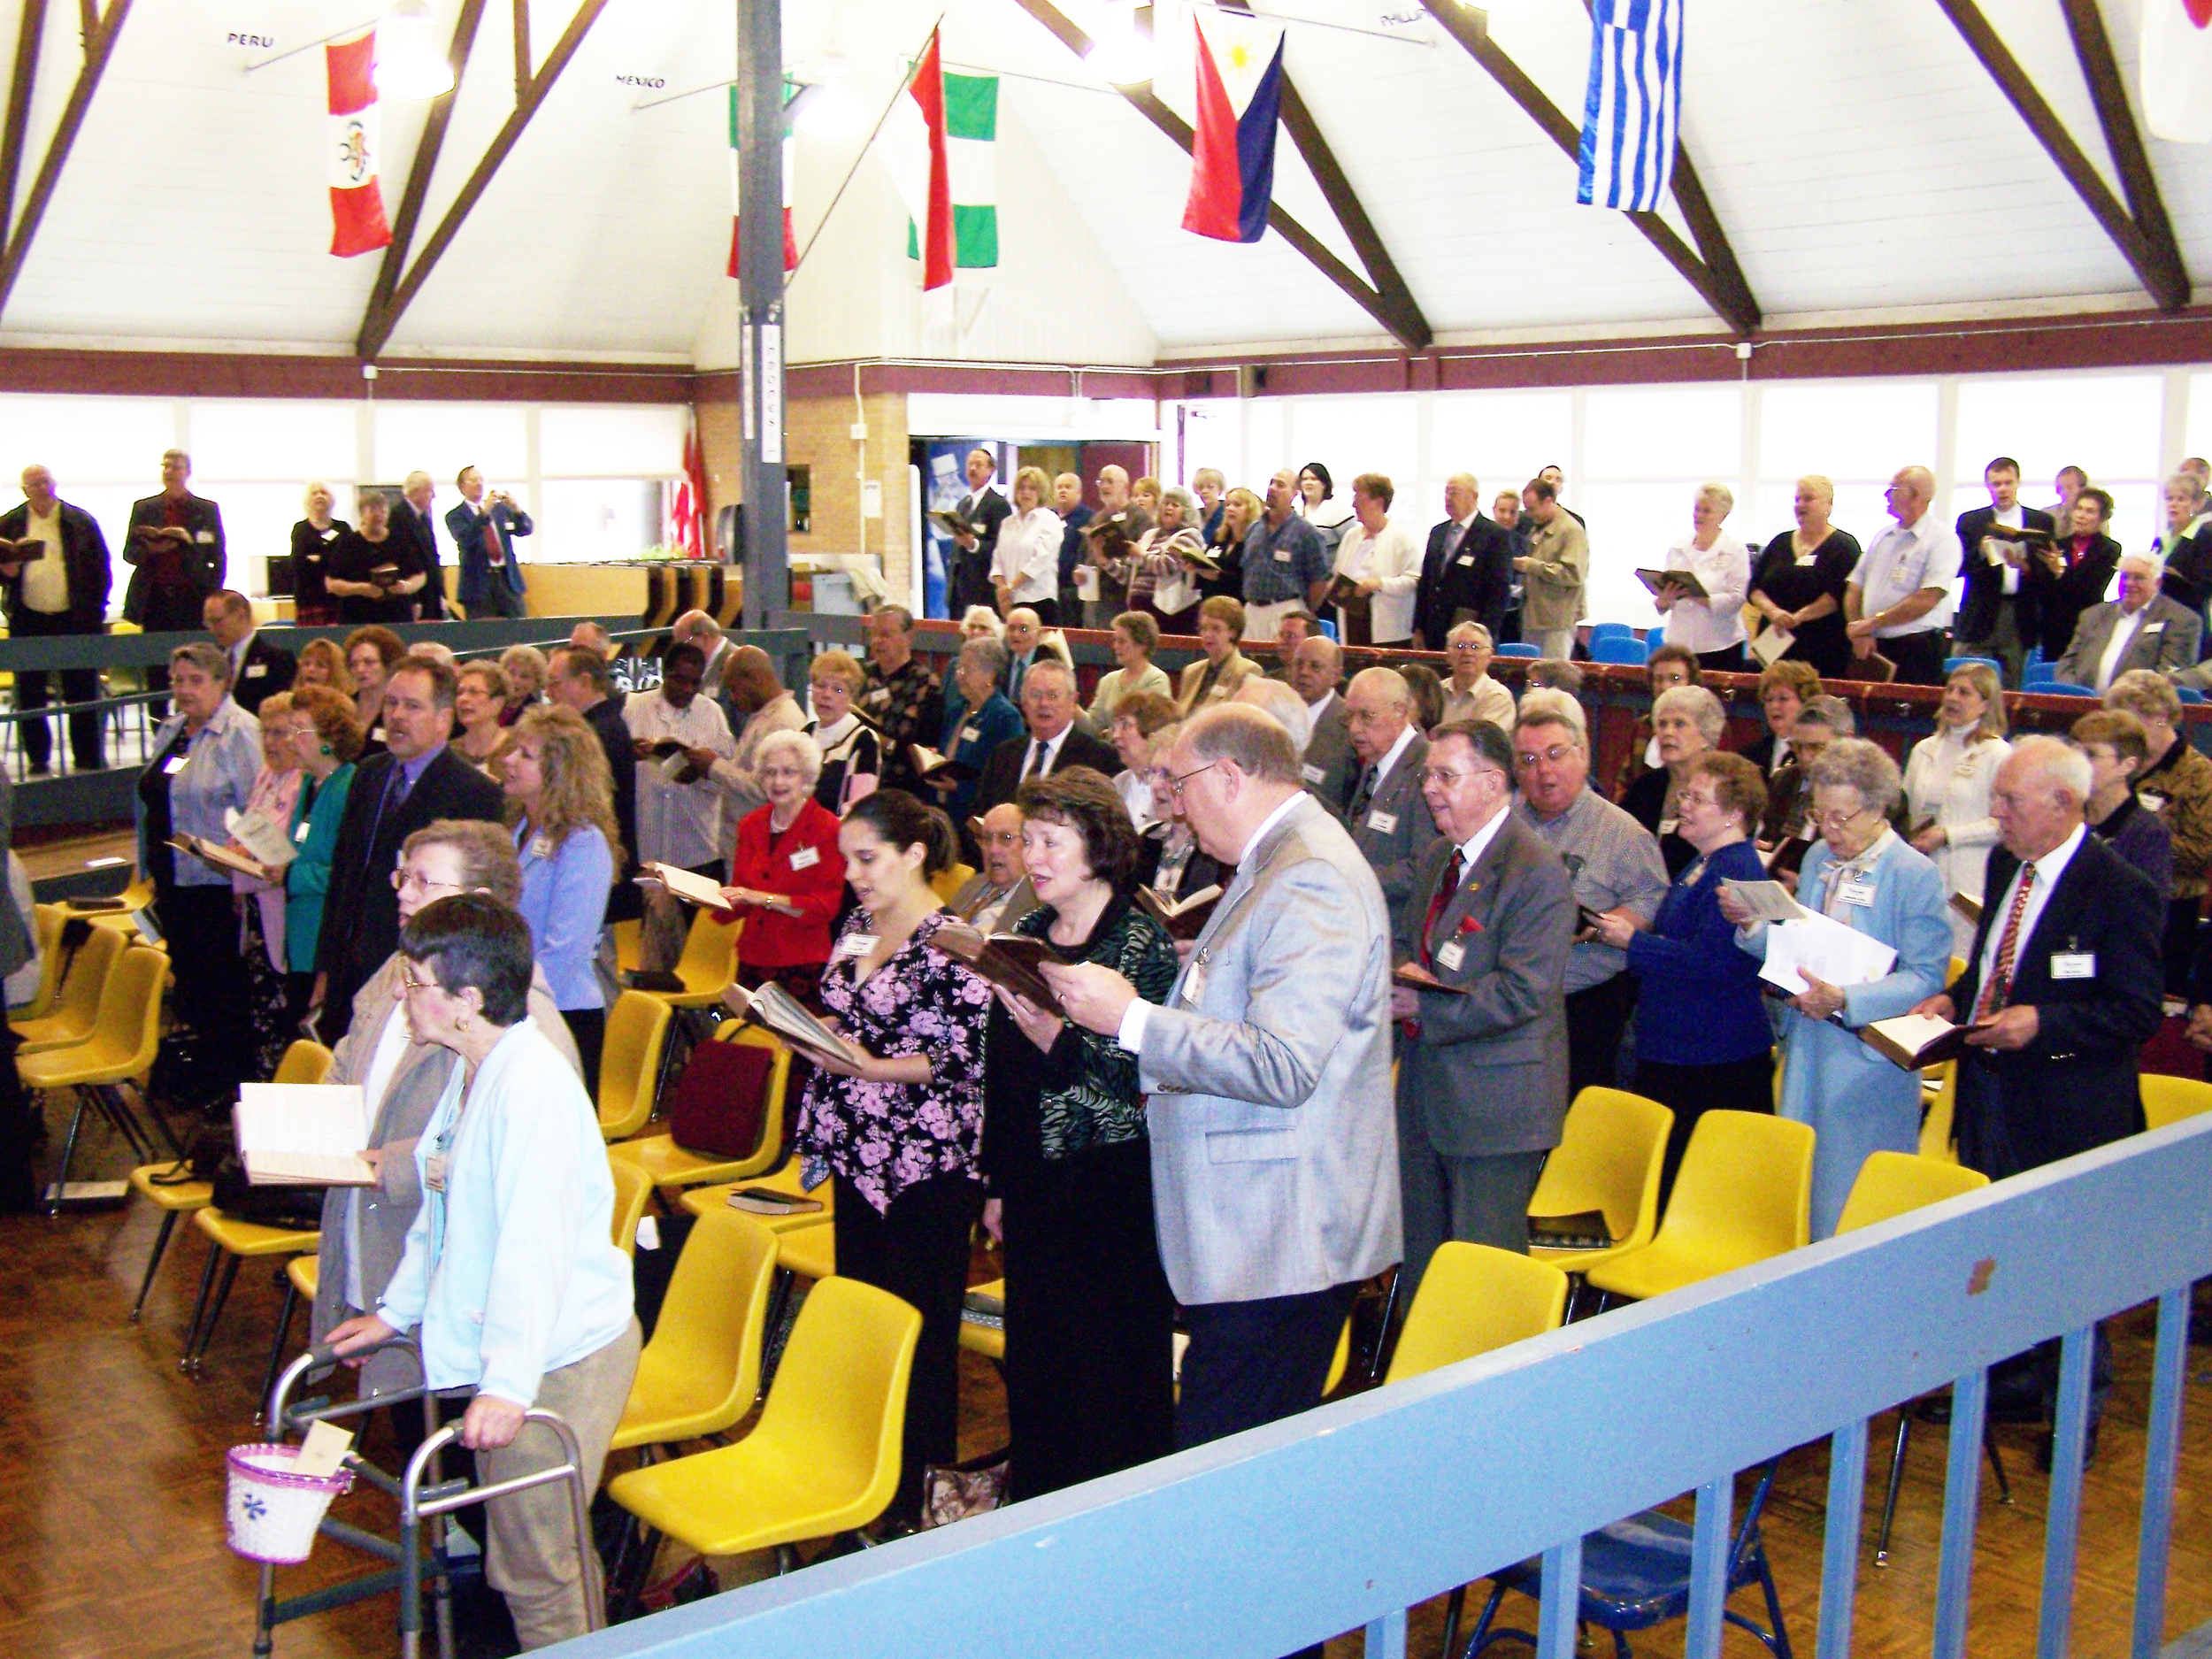 Our first worship service on March 11, 2007 at the Rounds Fine Art Center of Wichita Collegiate School.